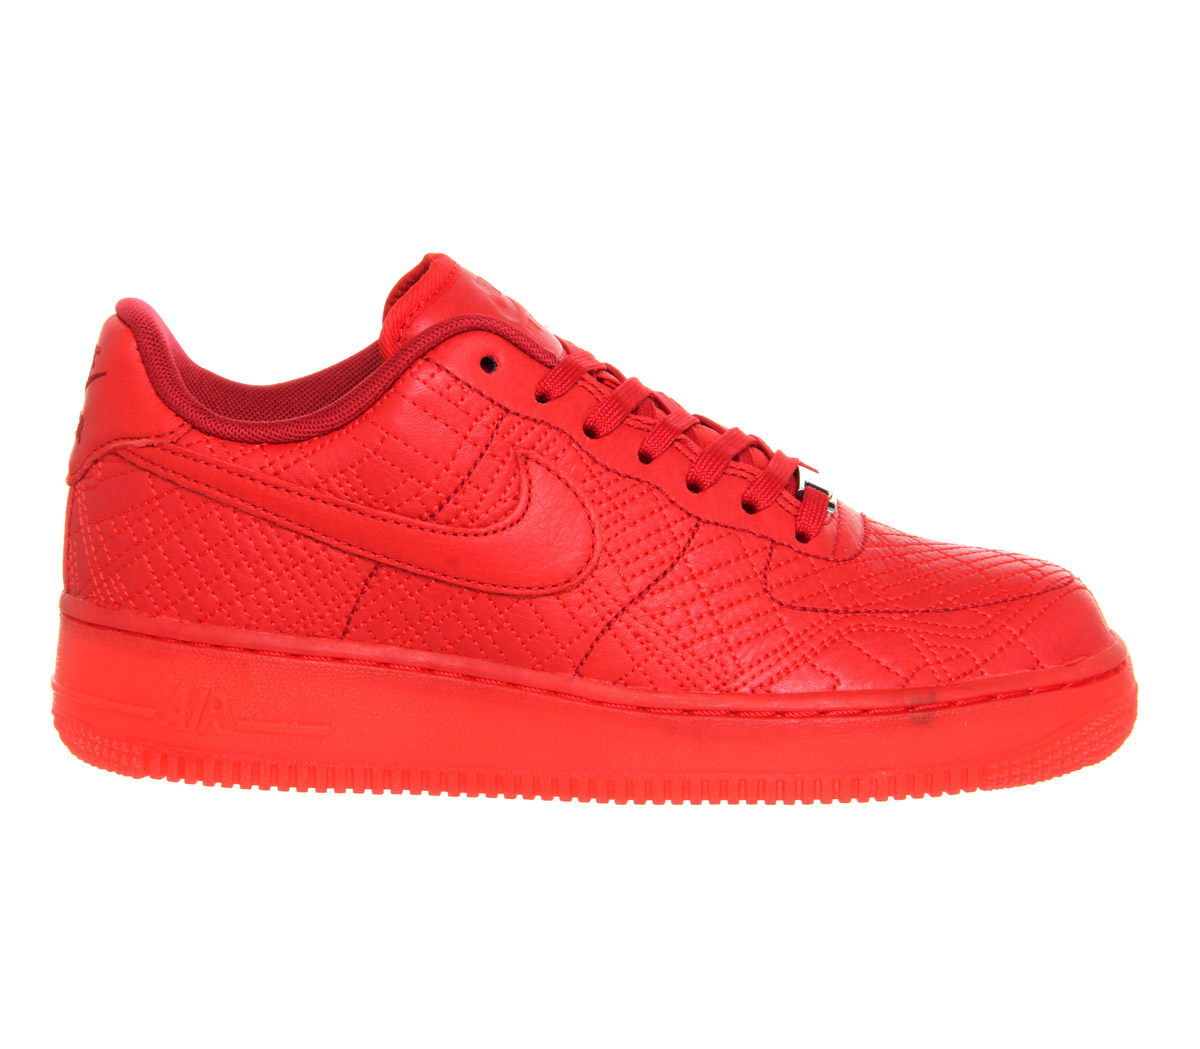 lyst nike air force 1 tokyo leather sneakers in red. Black Bedroom Furniture Sets. Home Design Ideas